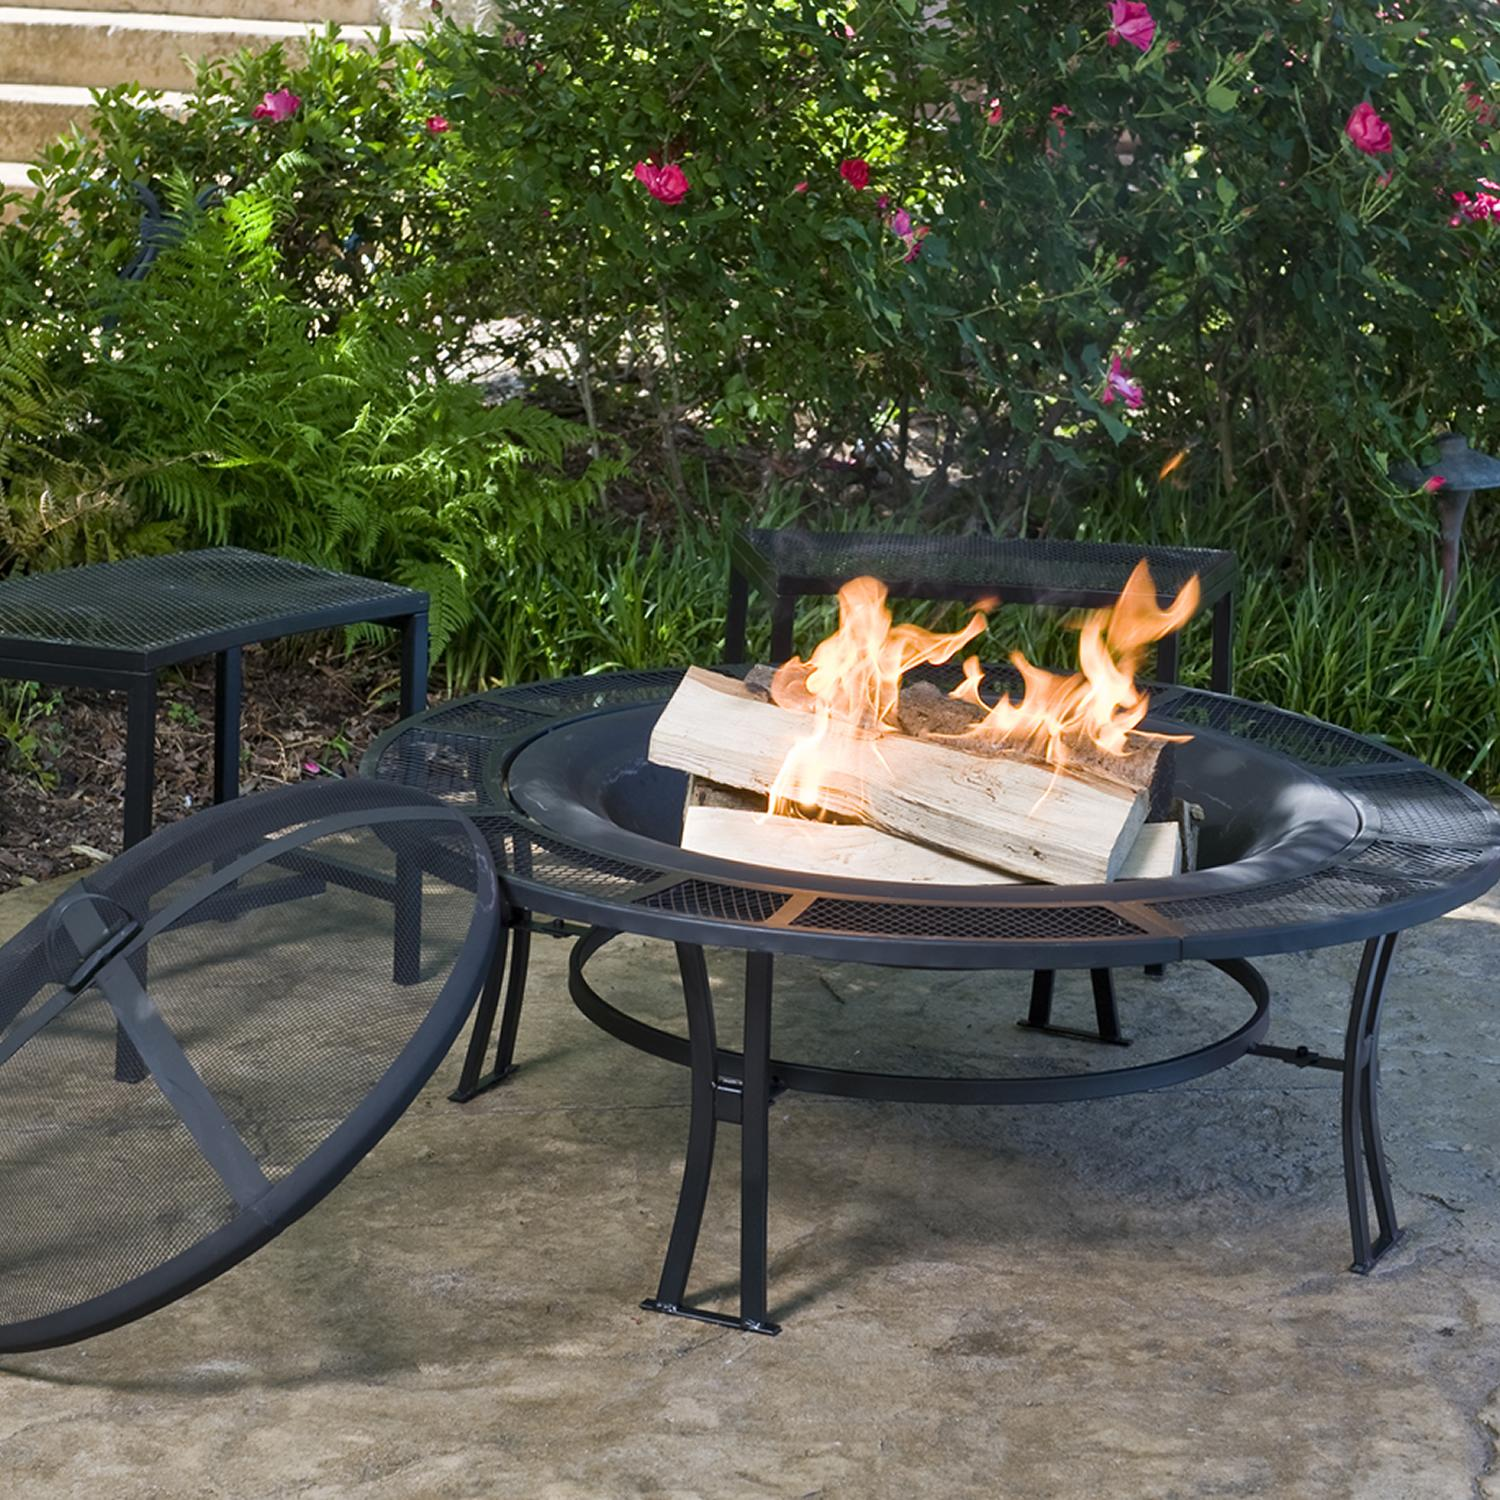 Cobraco Steel Fire Pit And Bench Set In Use